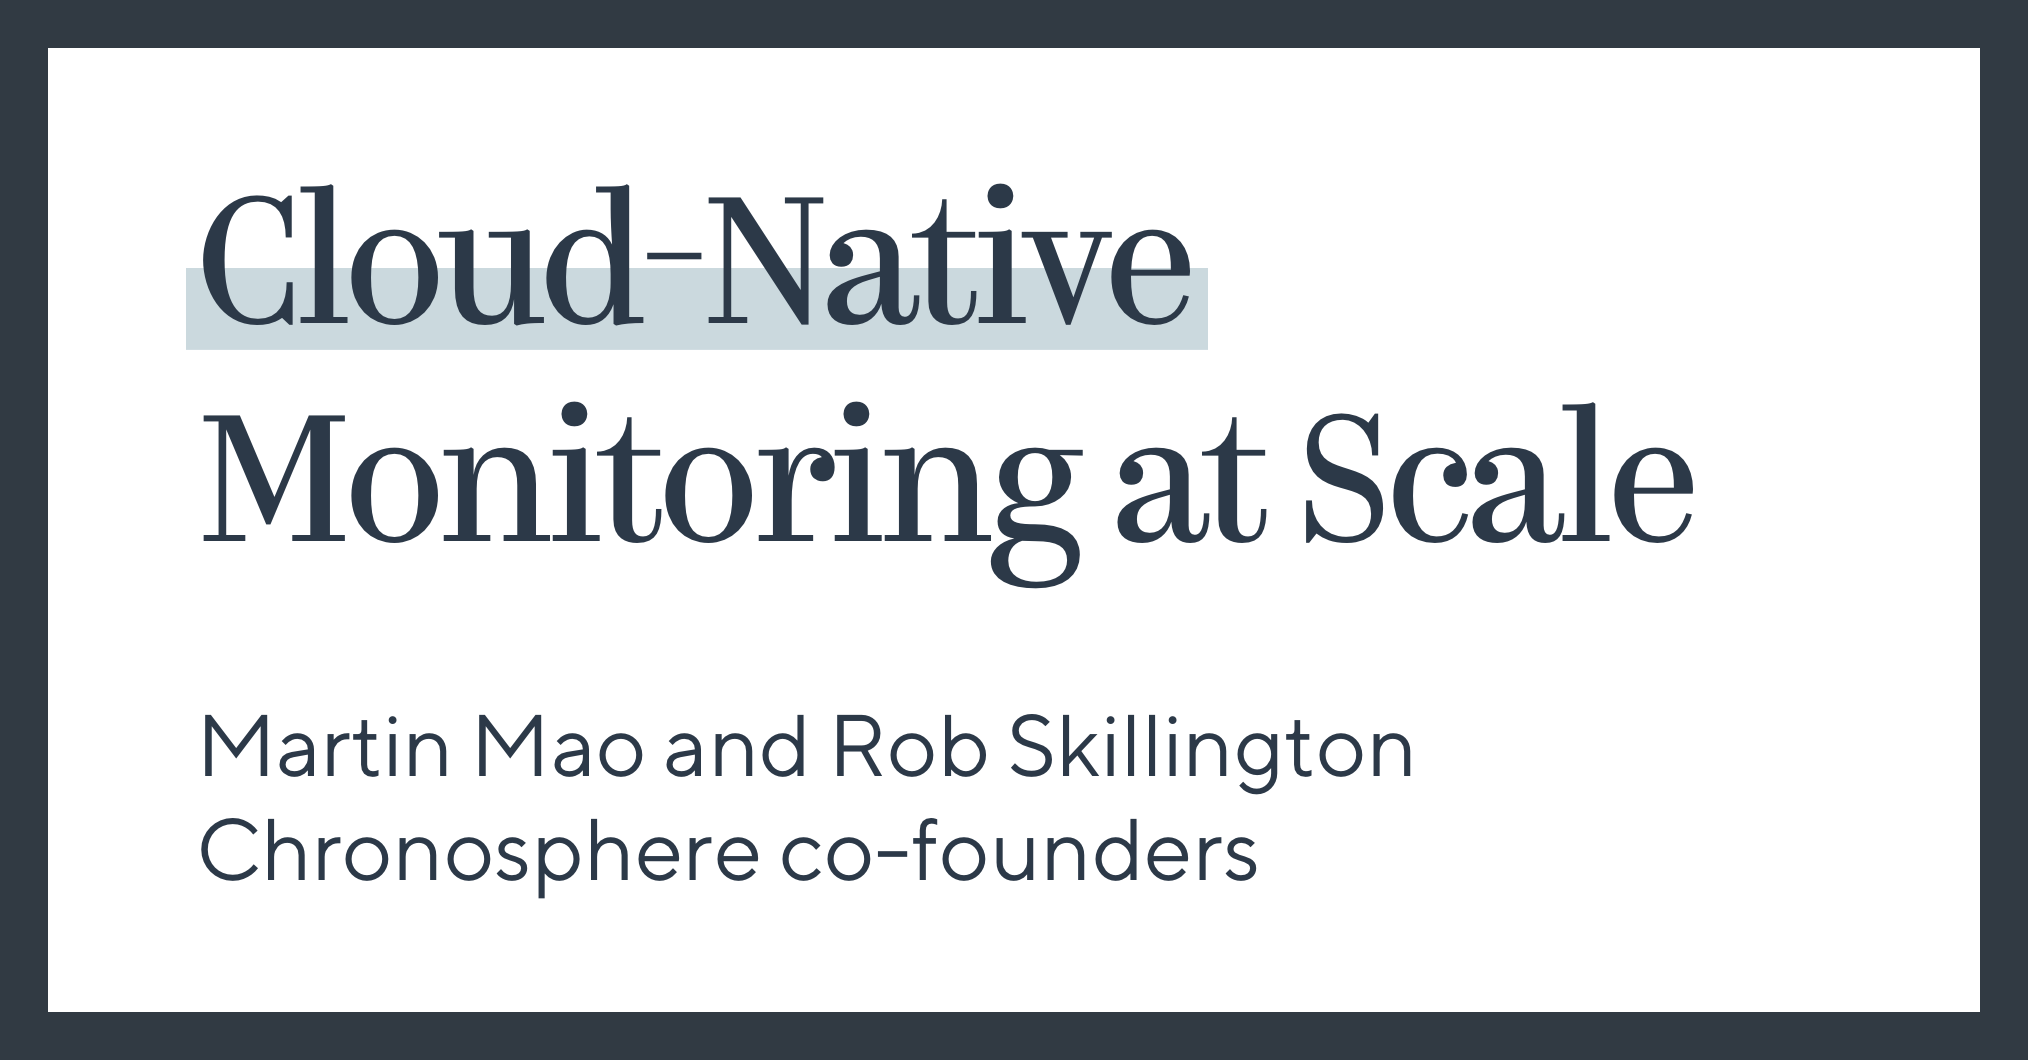 Cloud-Native Monitoring at Scale